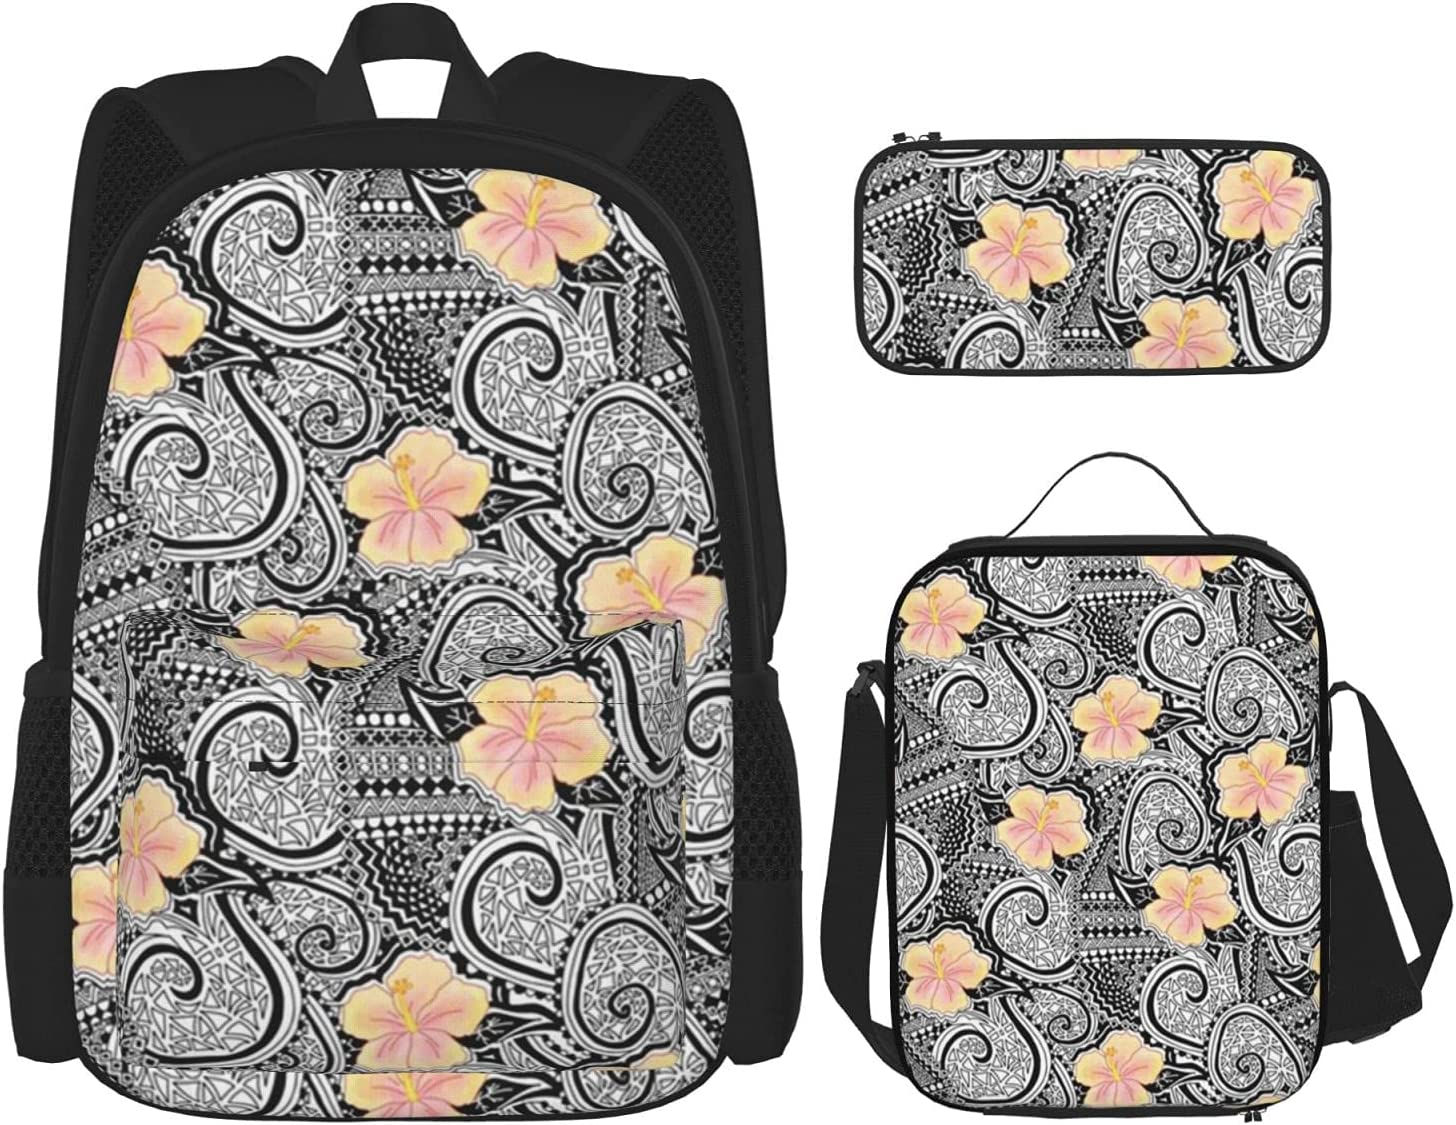 Backpack Bags Yellow Orange Ranking TOP14 Hibiscus Genuine Free Shipping Lunch with Flowers Bag